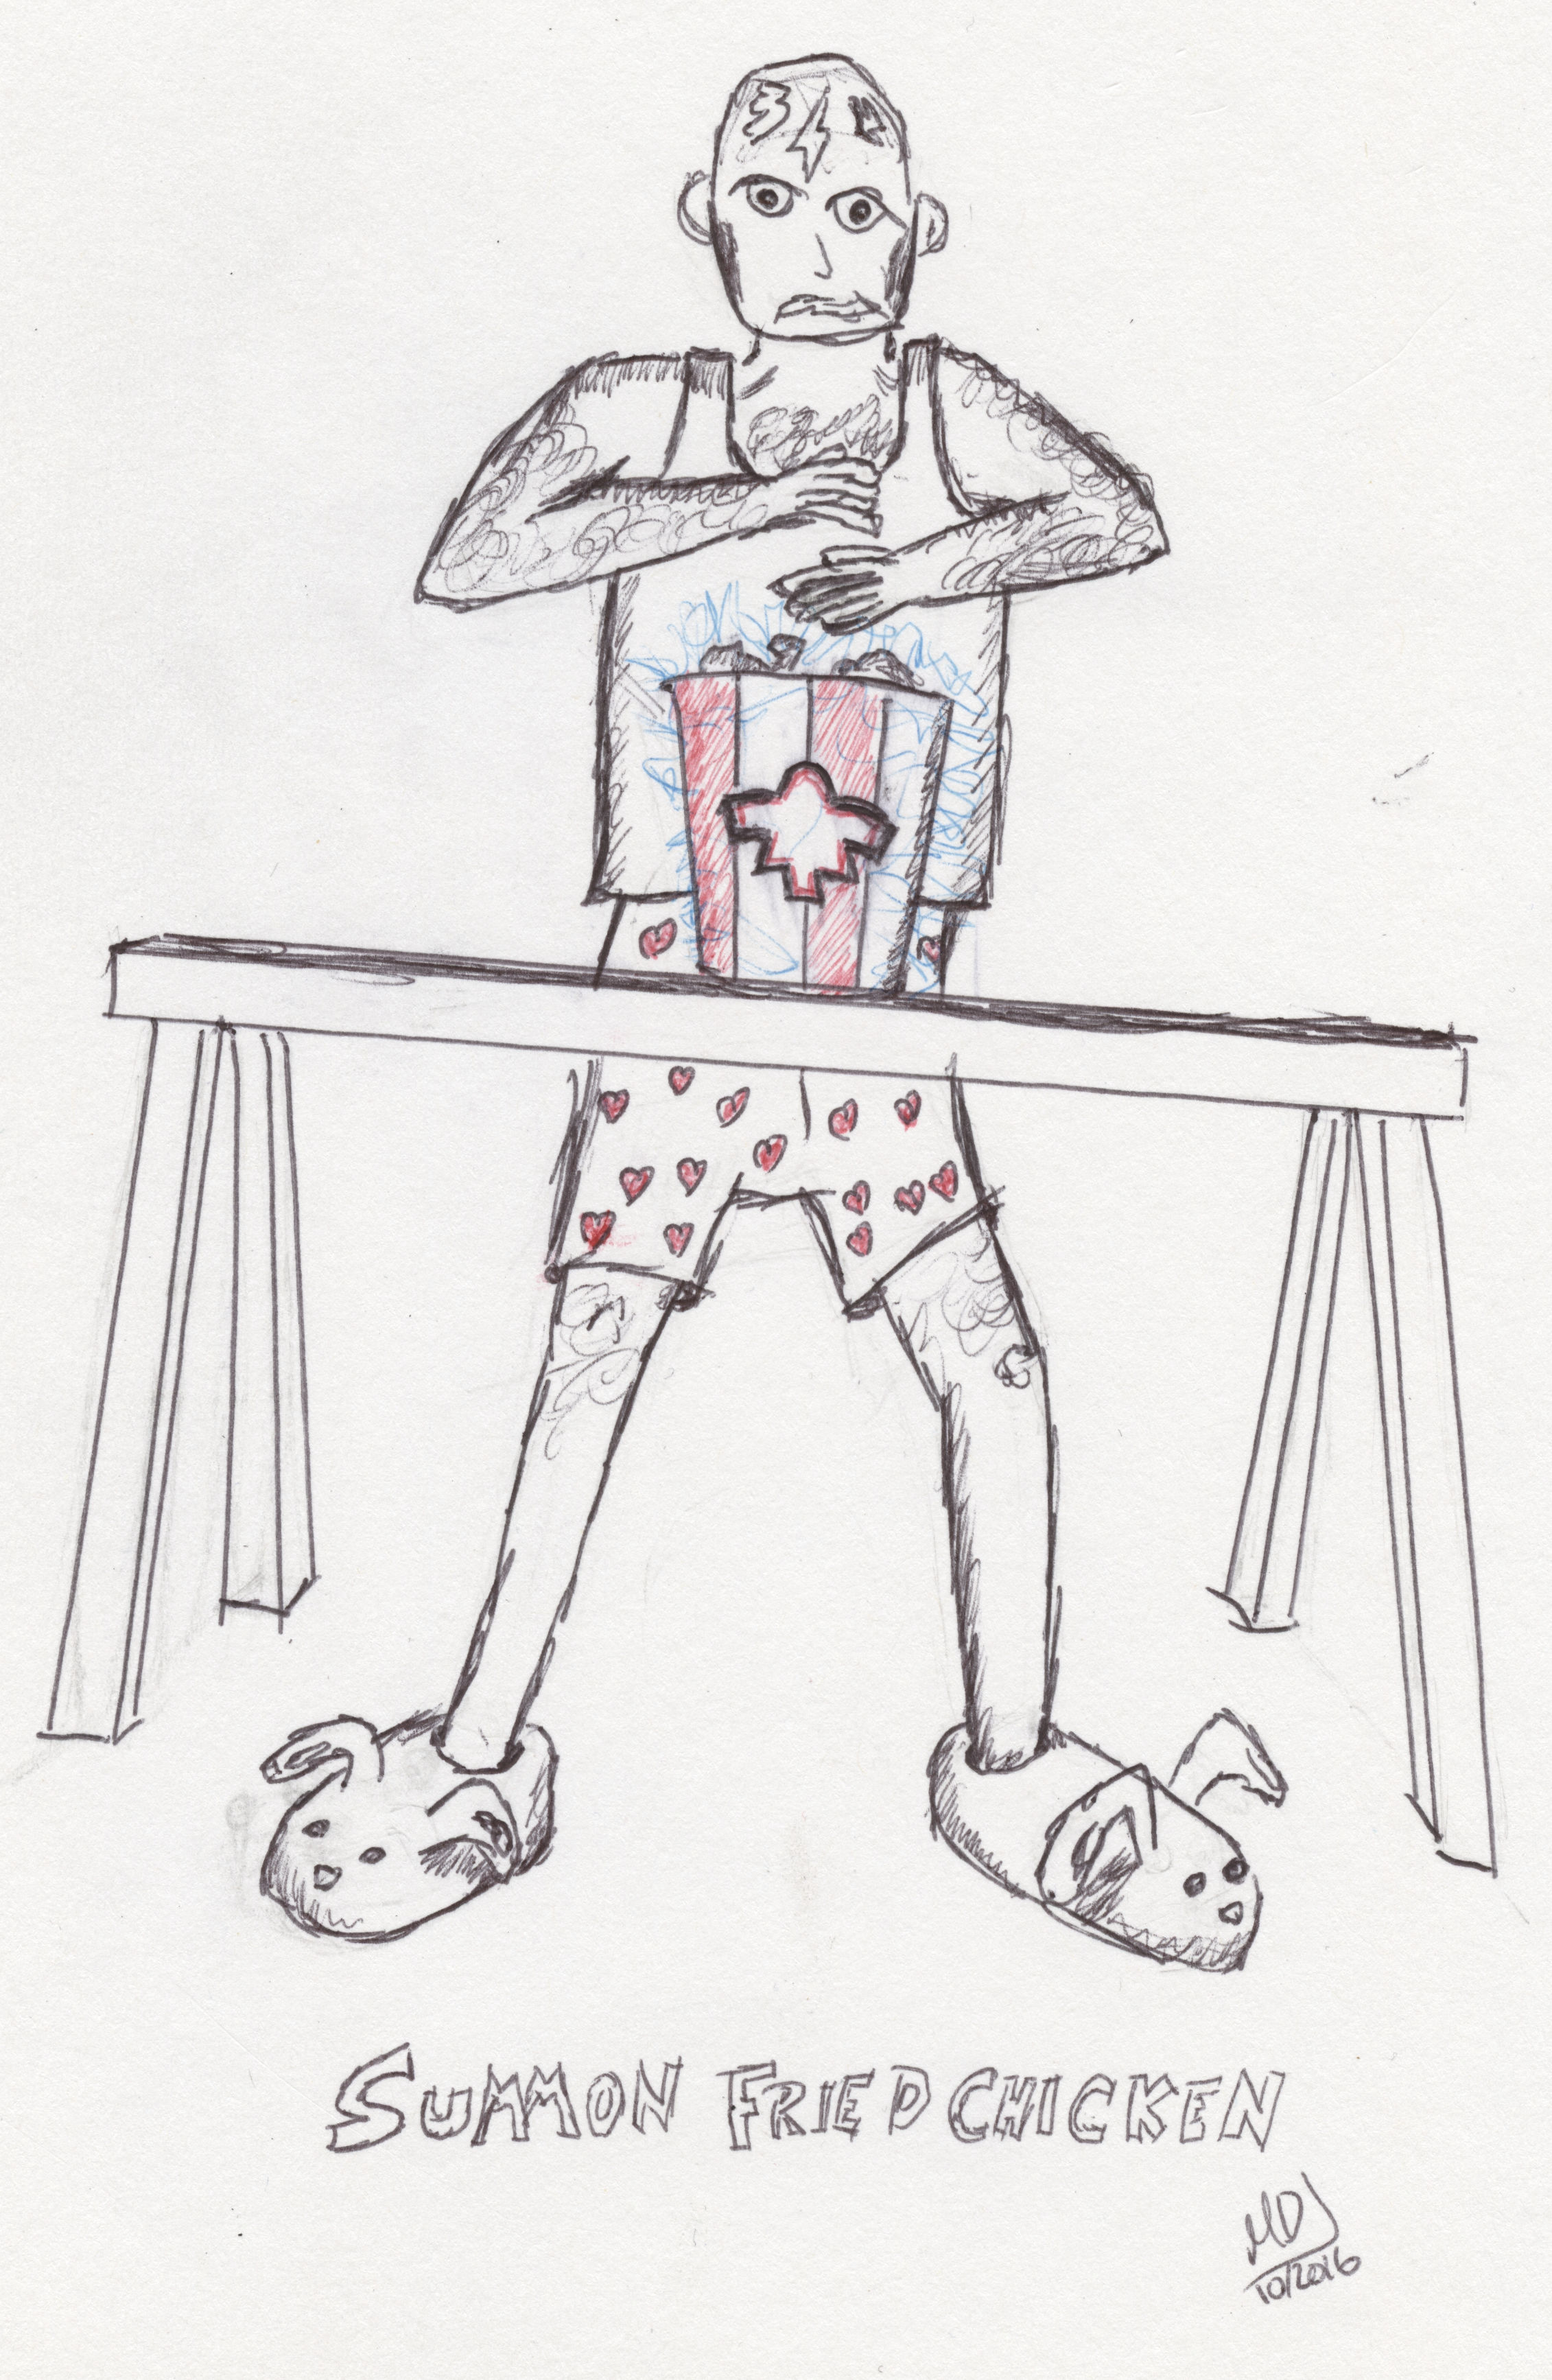 A drawing of a man in boxers and an undershirt, summoning a bucket of chicken.